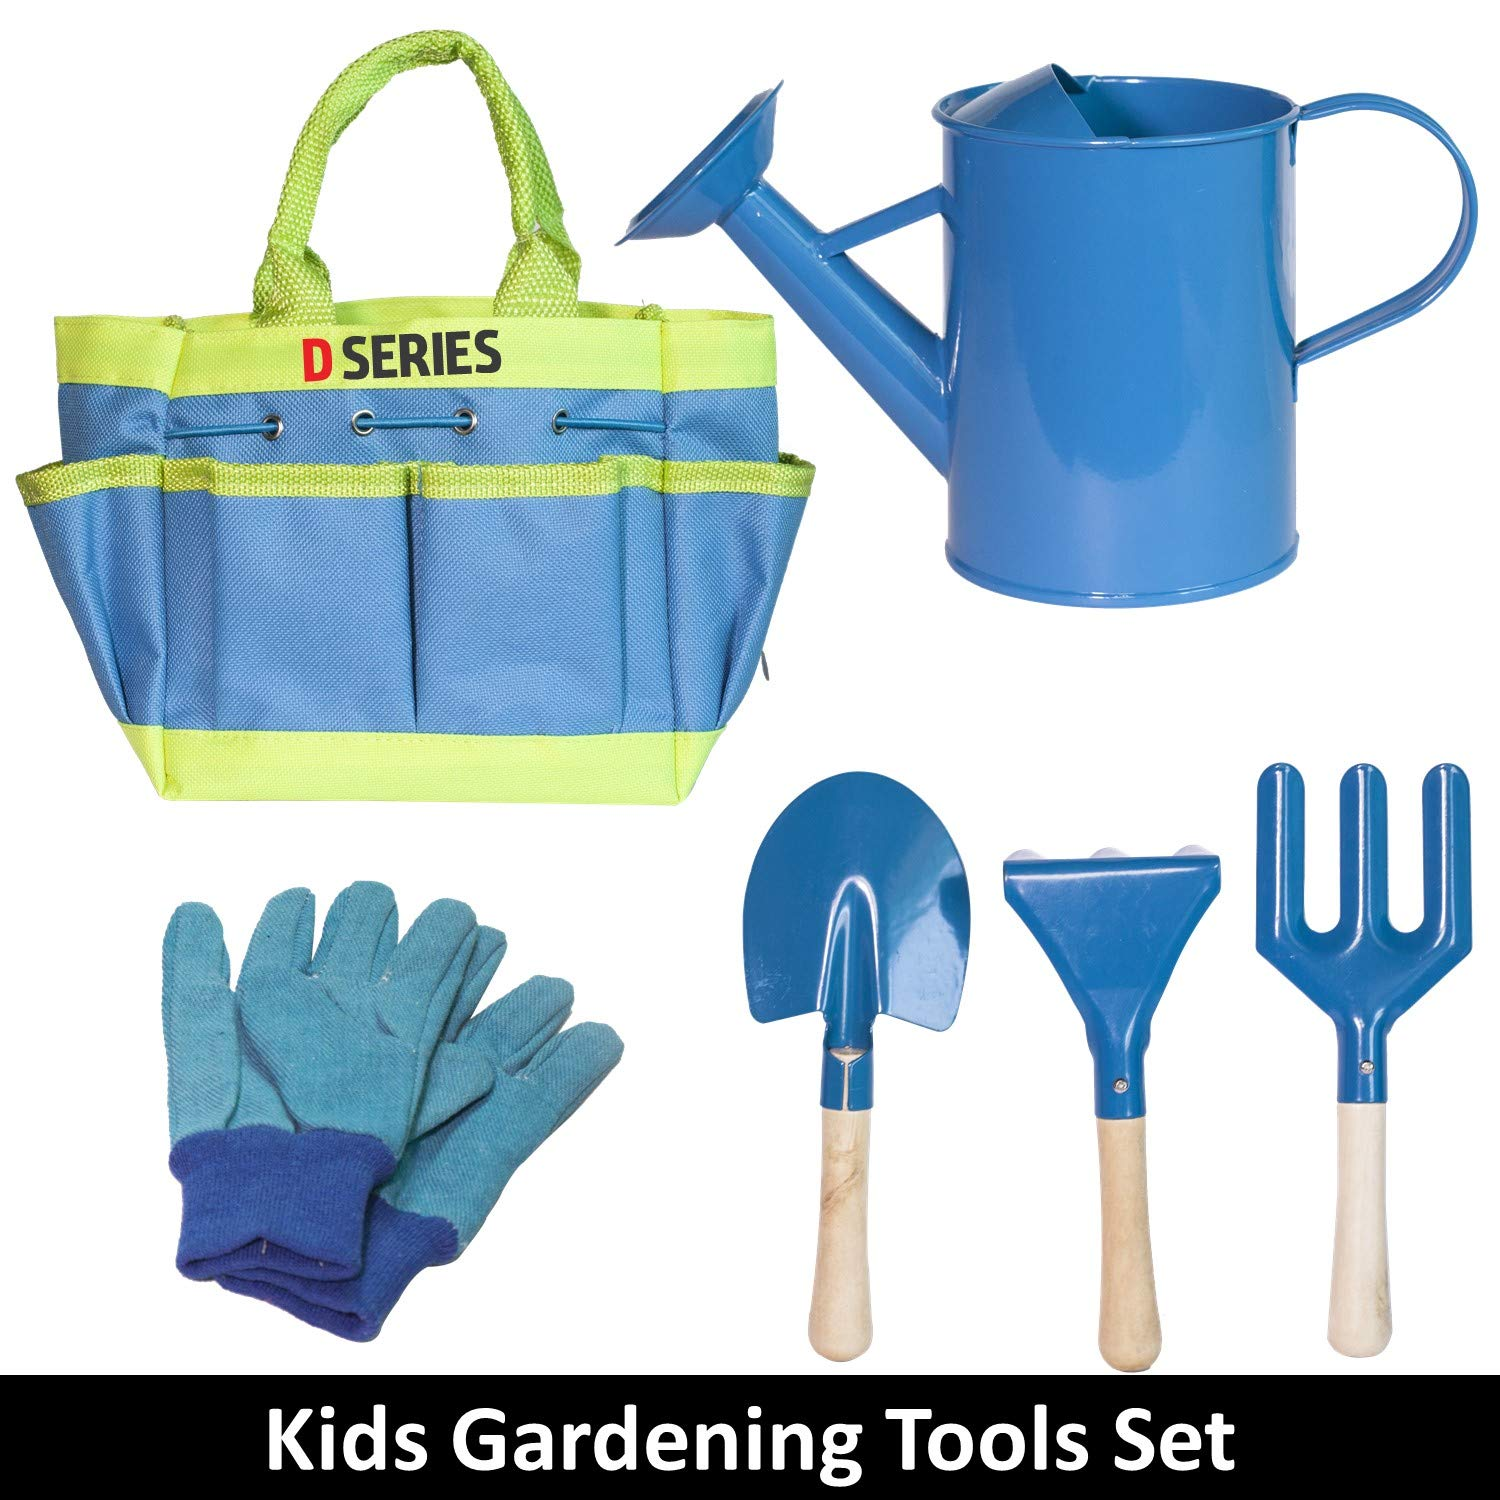 D SERIES Kids Gardening Tool Set Real Tools with Safety Edges, Gloves & Durable Tool Carrying Bag | Includes Blue Watering Can, Child Sized Trowel, Rake & Garden Fork | Learn While Playing